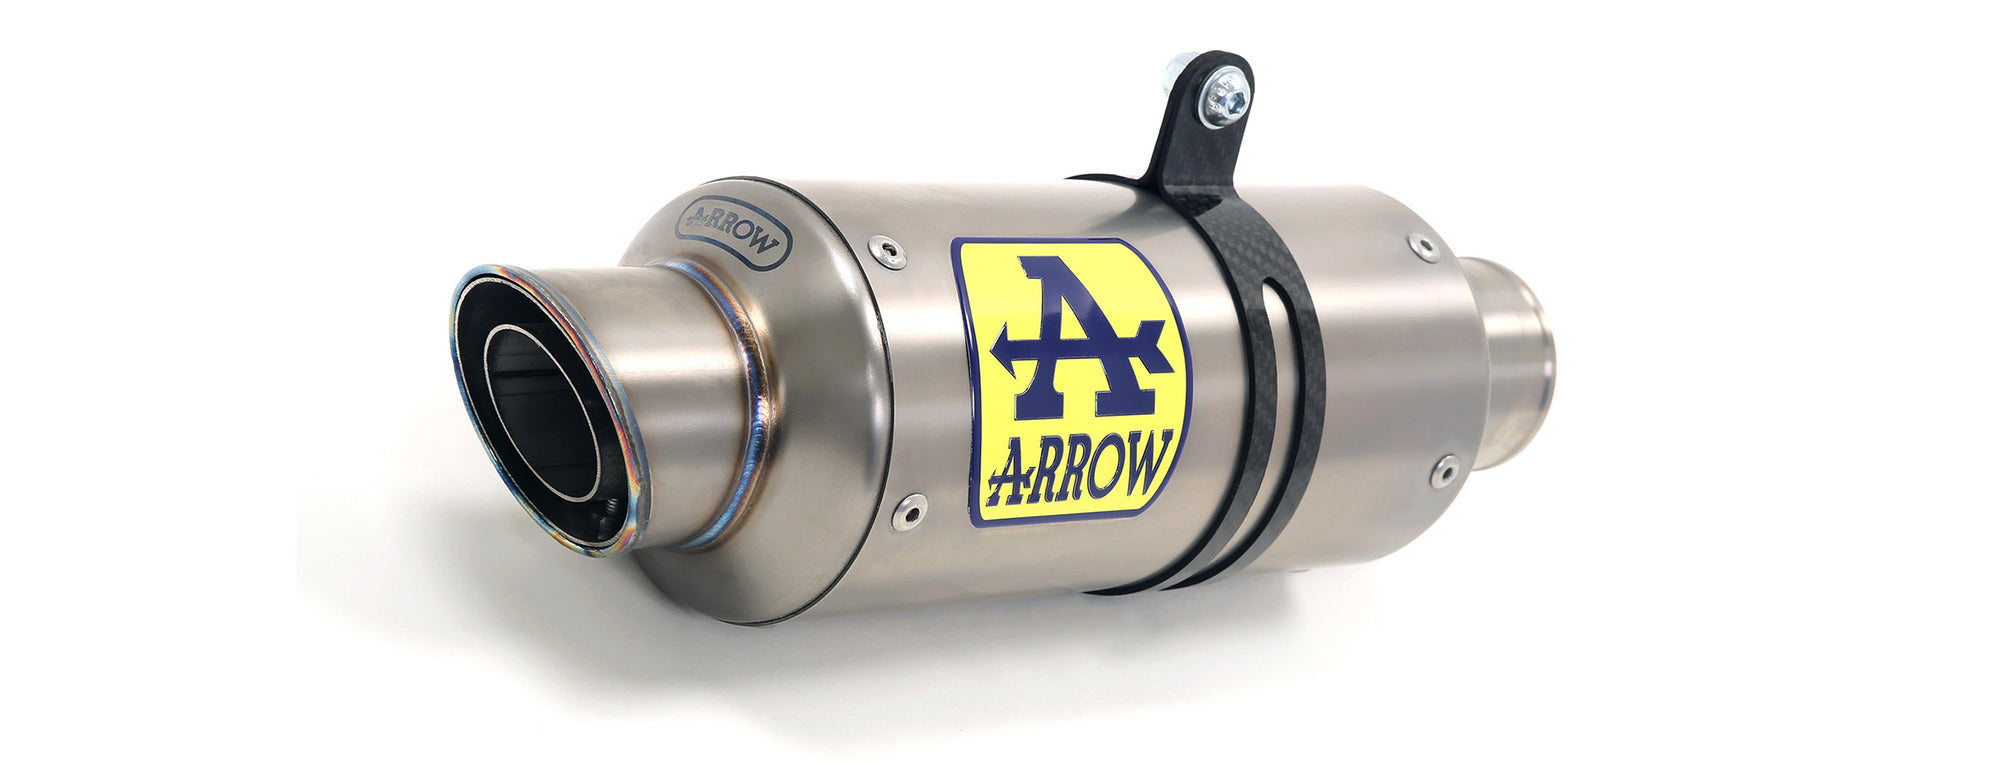 GP2 Exhaust - Ducati, Exhaust Silencer, Arrow Exhausts - Race and Trackday Parts